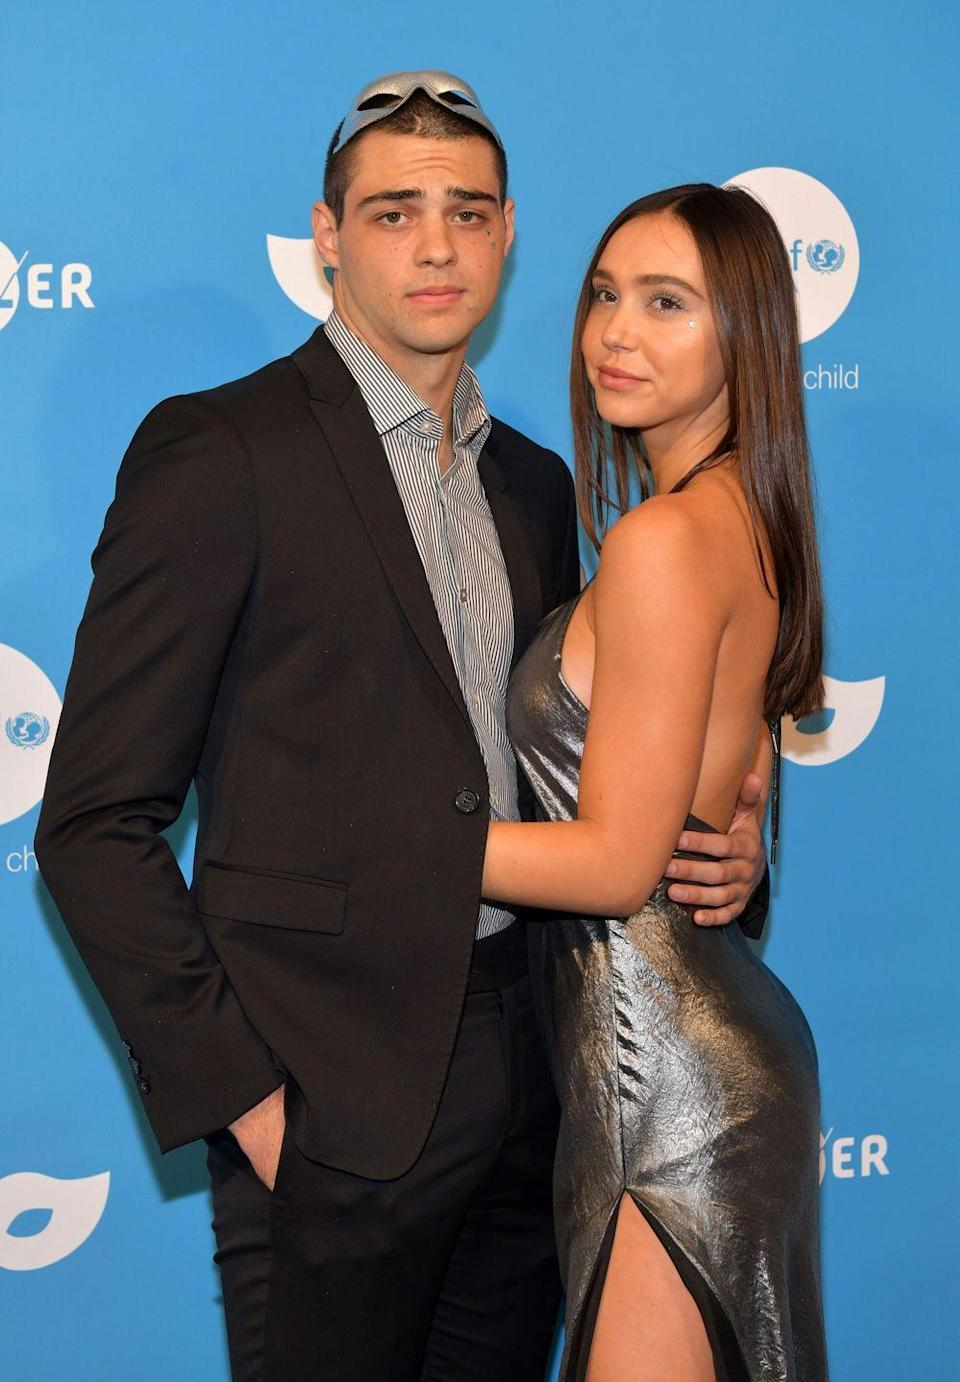 "<p>Noah and Alexis first sparked dating rumors back in September 2019 when they did commoner activities together like picking up each other from airports, eating at restaurants, and shopping at Whole Foods together. The couple went Instagram official in January 2020, <a href=""https://www.dailymail.co.uk/tvshowbiz/article-8254911/Noah-Centineo-Alexis-Ren-ended-relatipnship-one-year.html"" rel=""nofollow noopener"" target=""_blank"" data-ylk=""slk:but they ended their relationship just three months later in April"" class=""link rapid-noclick-resp"">but they ended their relationship just three months later in April</a>, as evidenced by them deleting pics of each other from social media and unfollowing each other on Instagram. </p>"